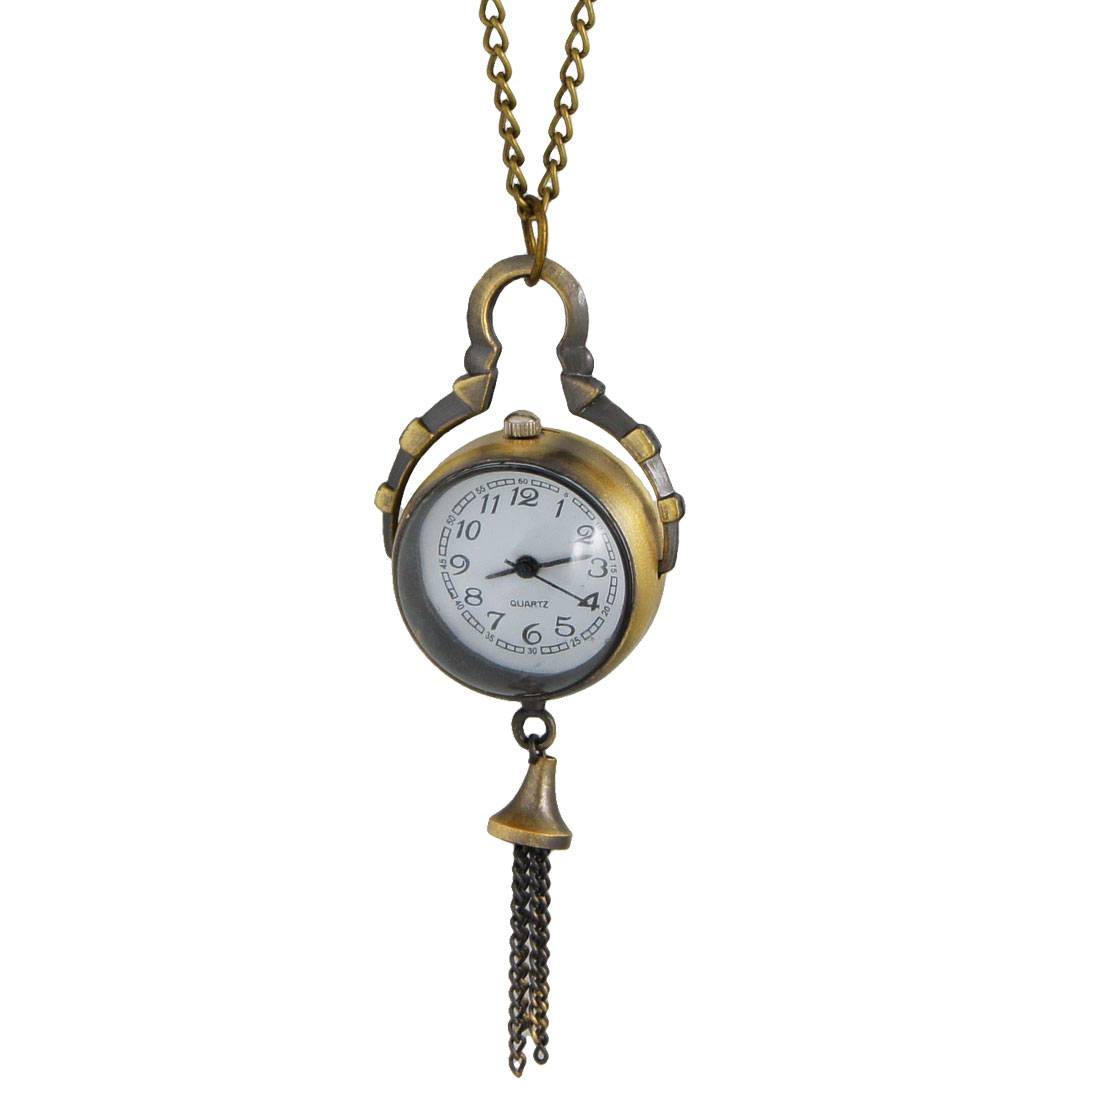 Bronze Tone Clear Plastic Crystal Ball Shaped Pendant Black Arabic Number Dial Necklace Watch